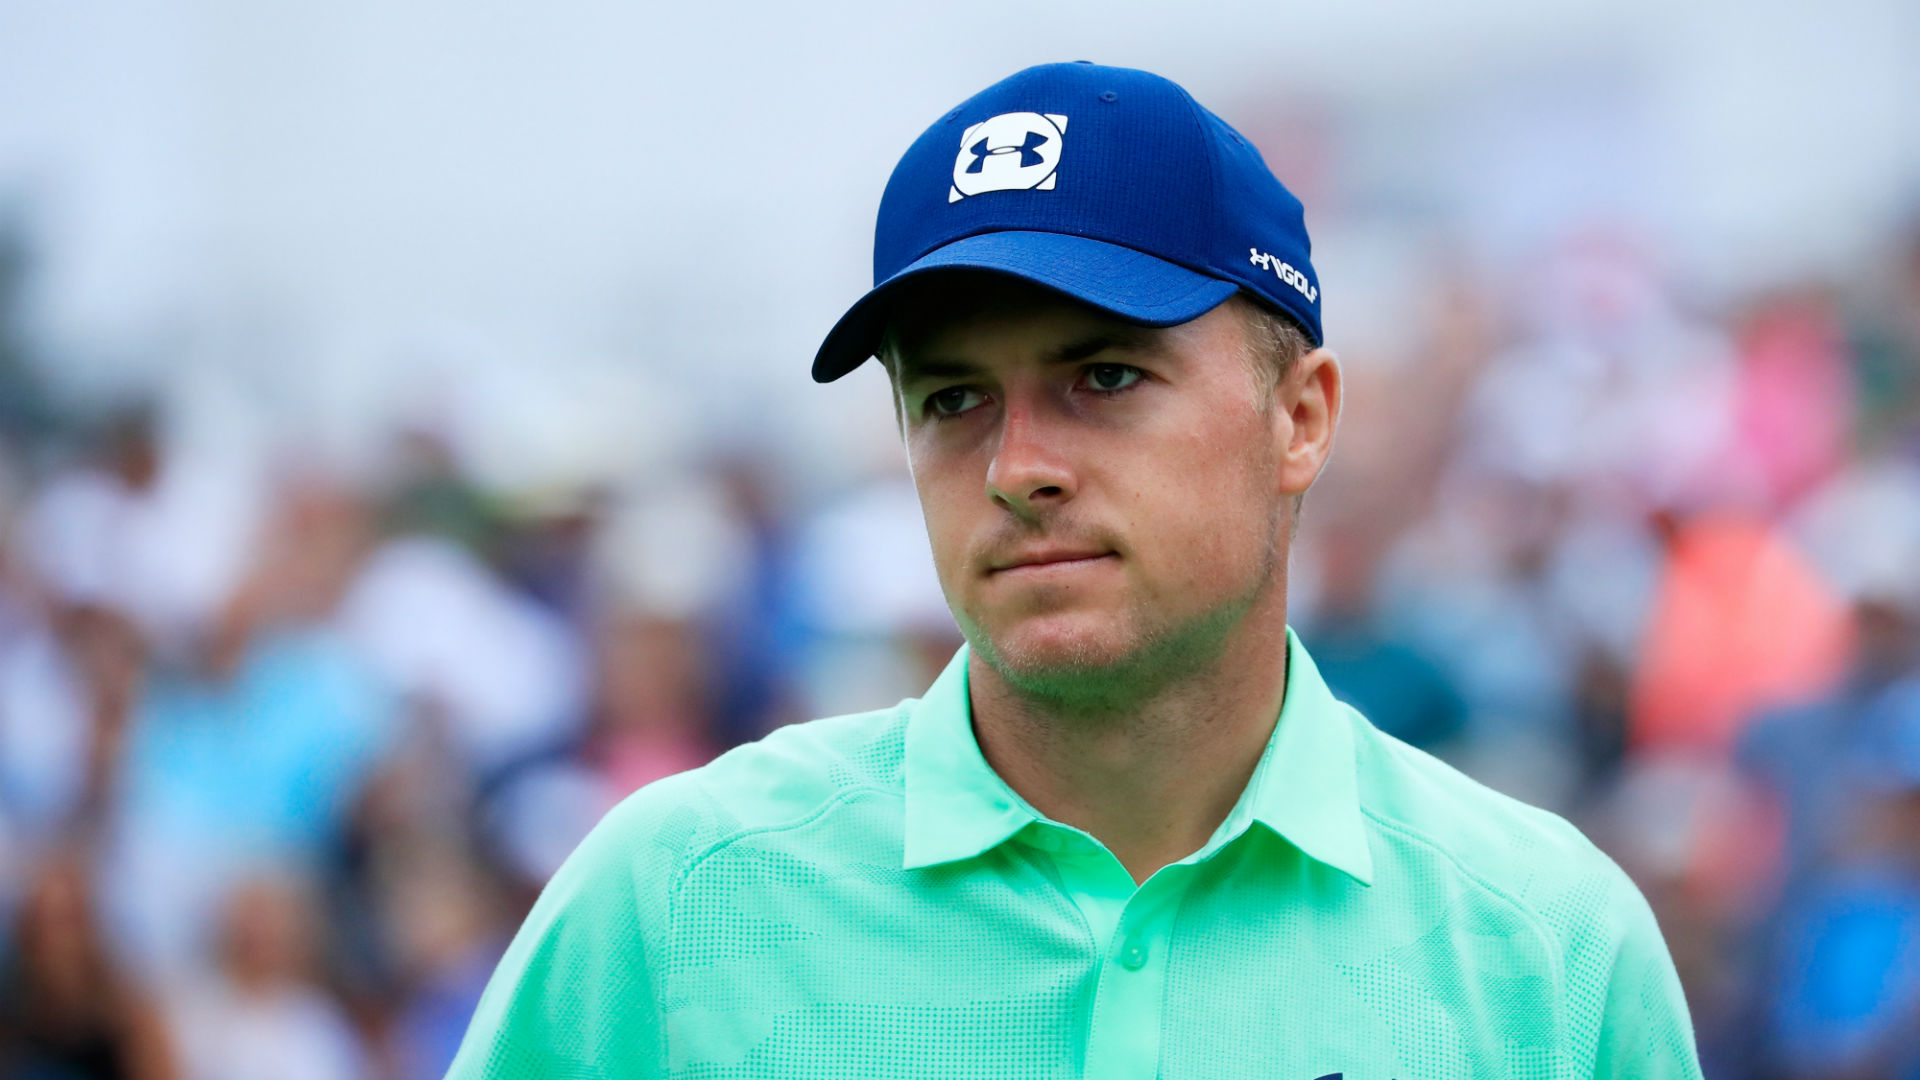 Spieth frustrated after missing out on Tour Championship